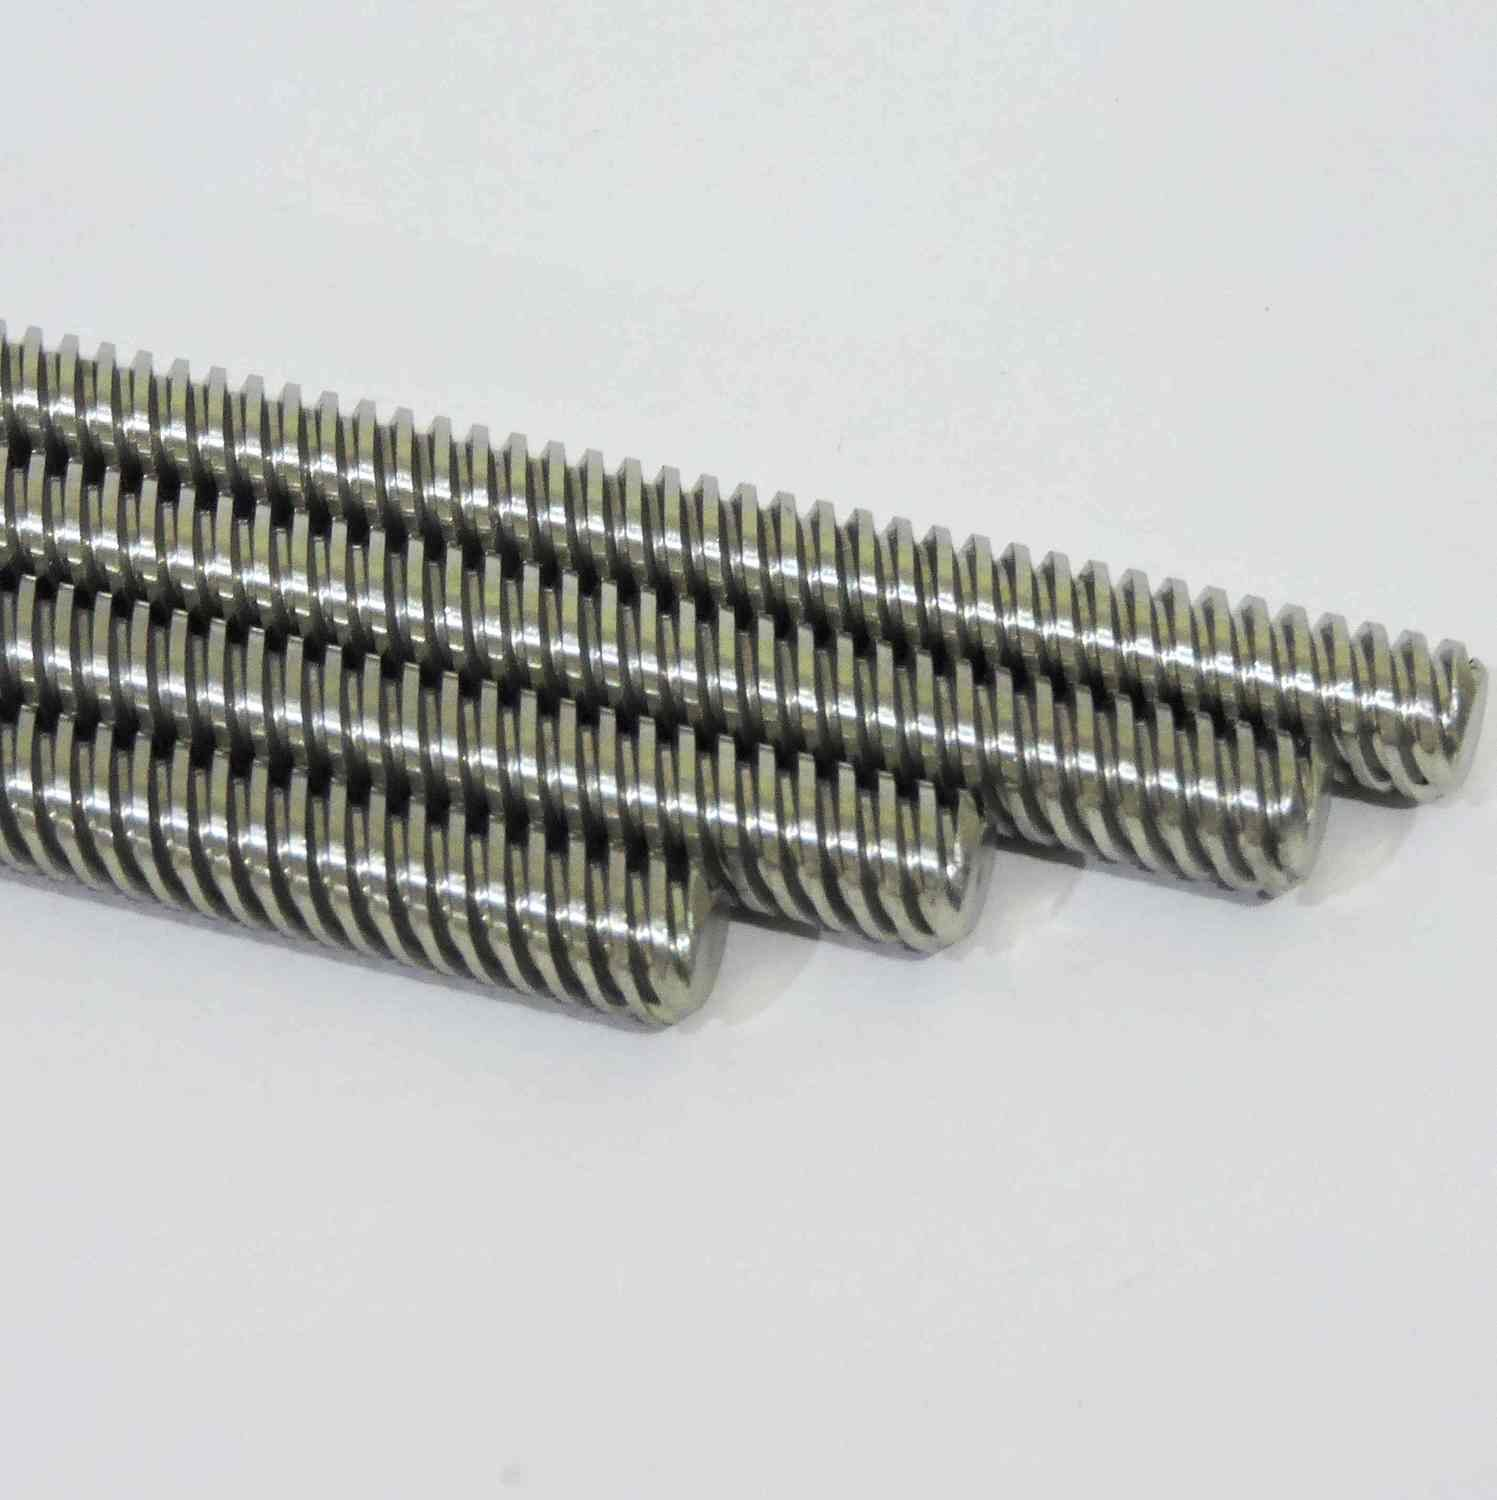 8mm Metric Acme Lead Screw (500mm)